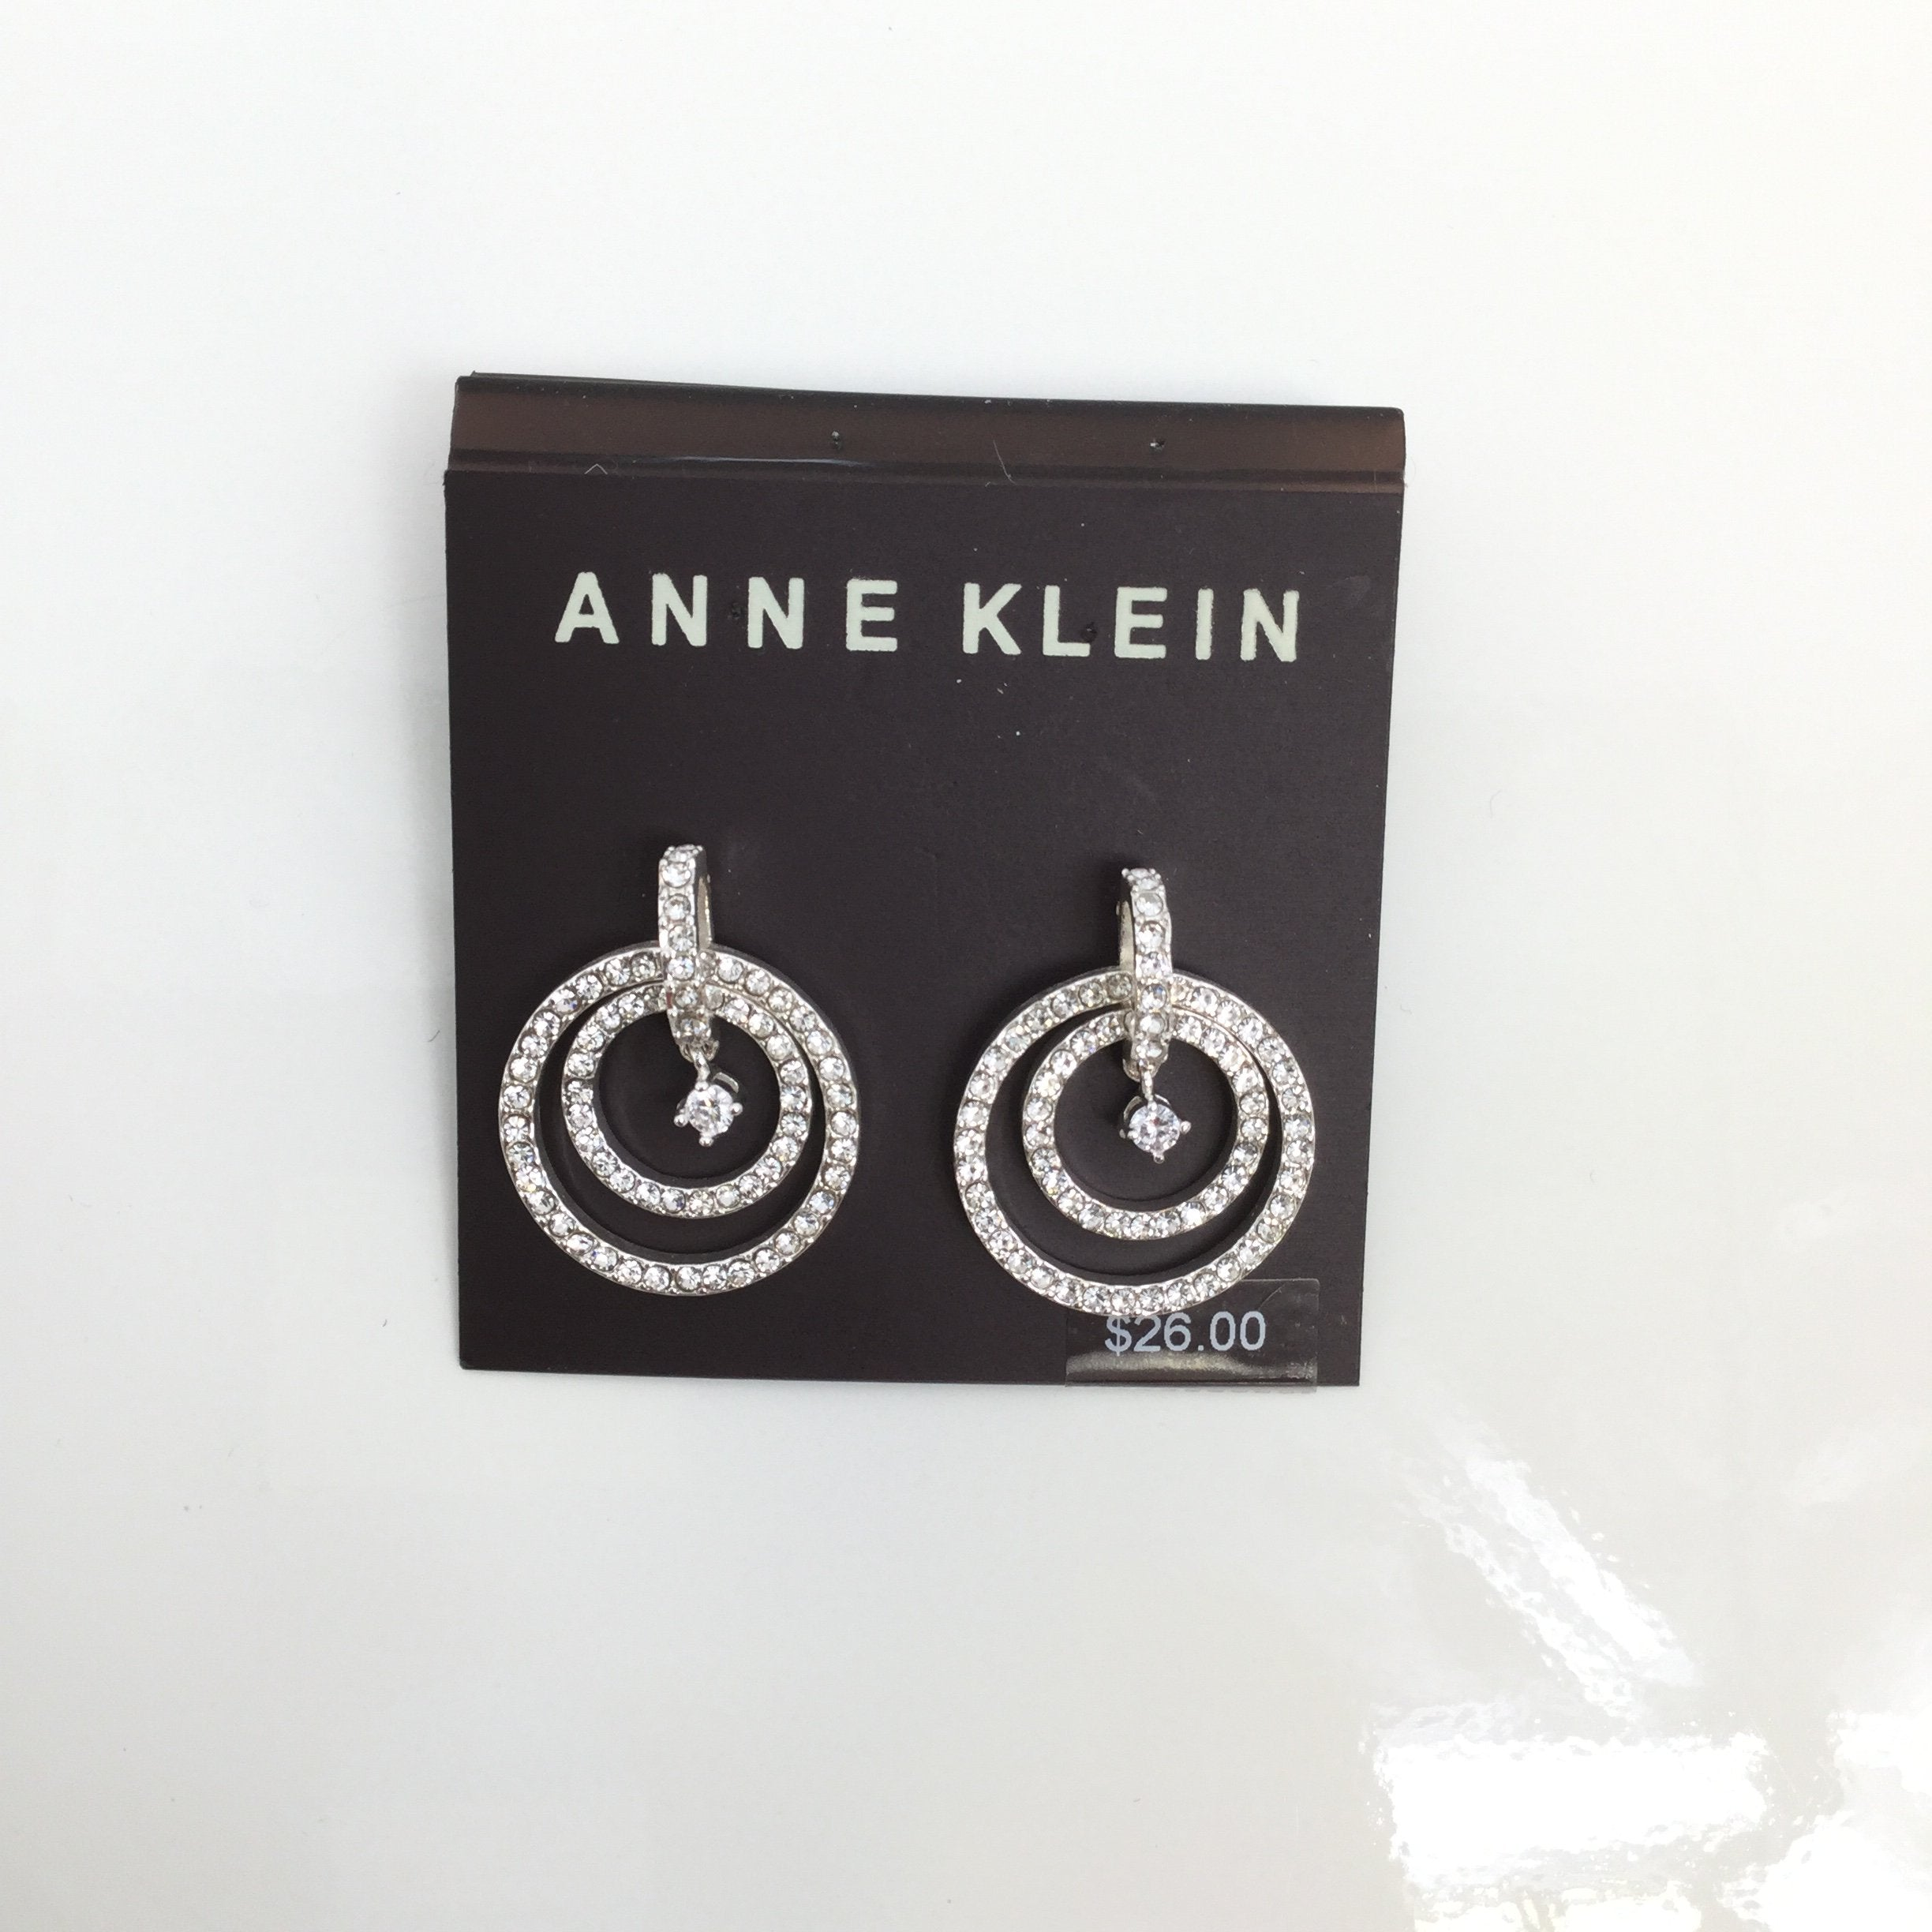 ANNE KLEIN EARRINGS - <P>YOU'LL BE READY FOR NEW YEARS EVE WITH THESE SPARKLY POST EARRINGS FROM ANNE KLEIN! NEW.</P>